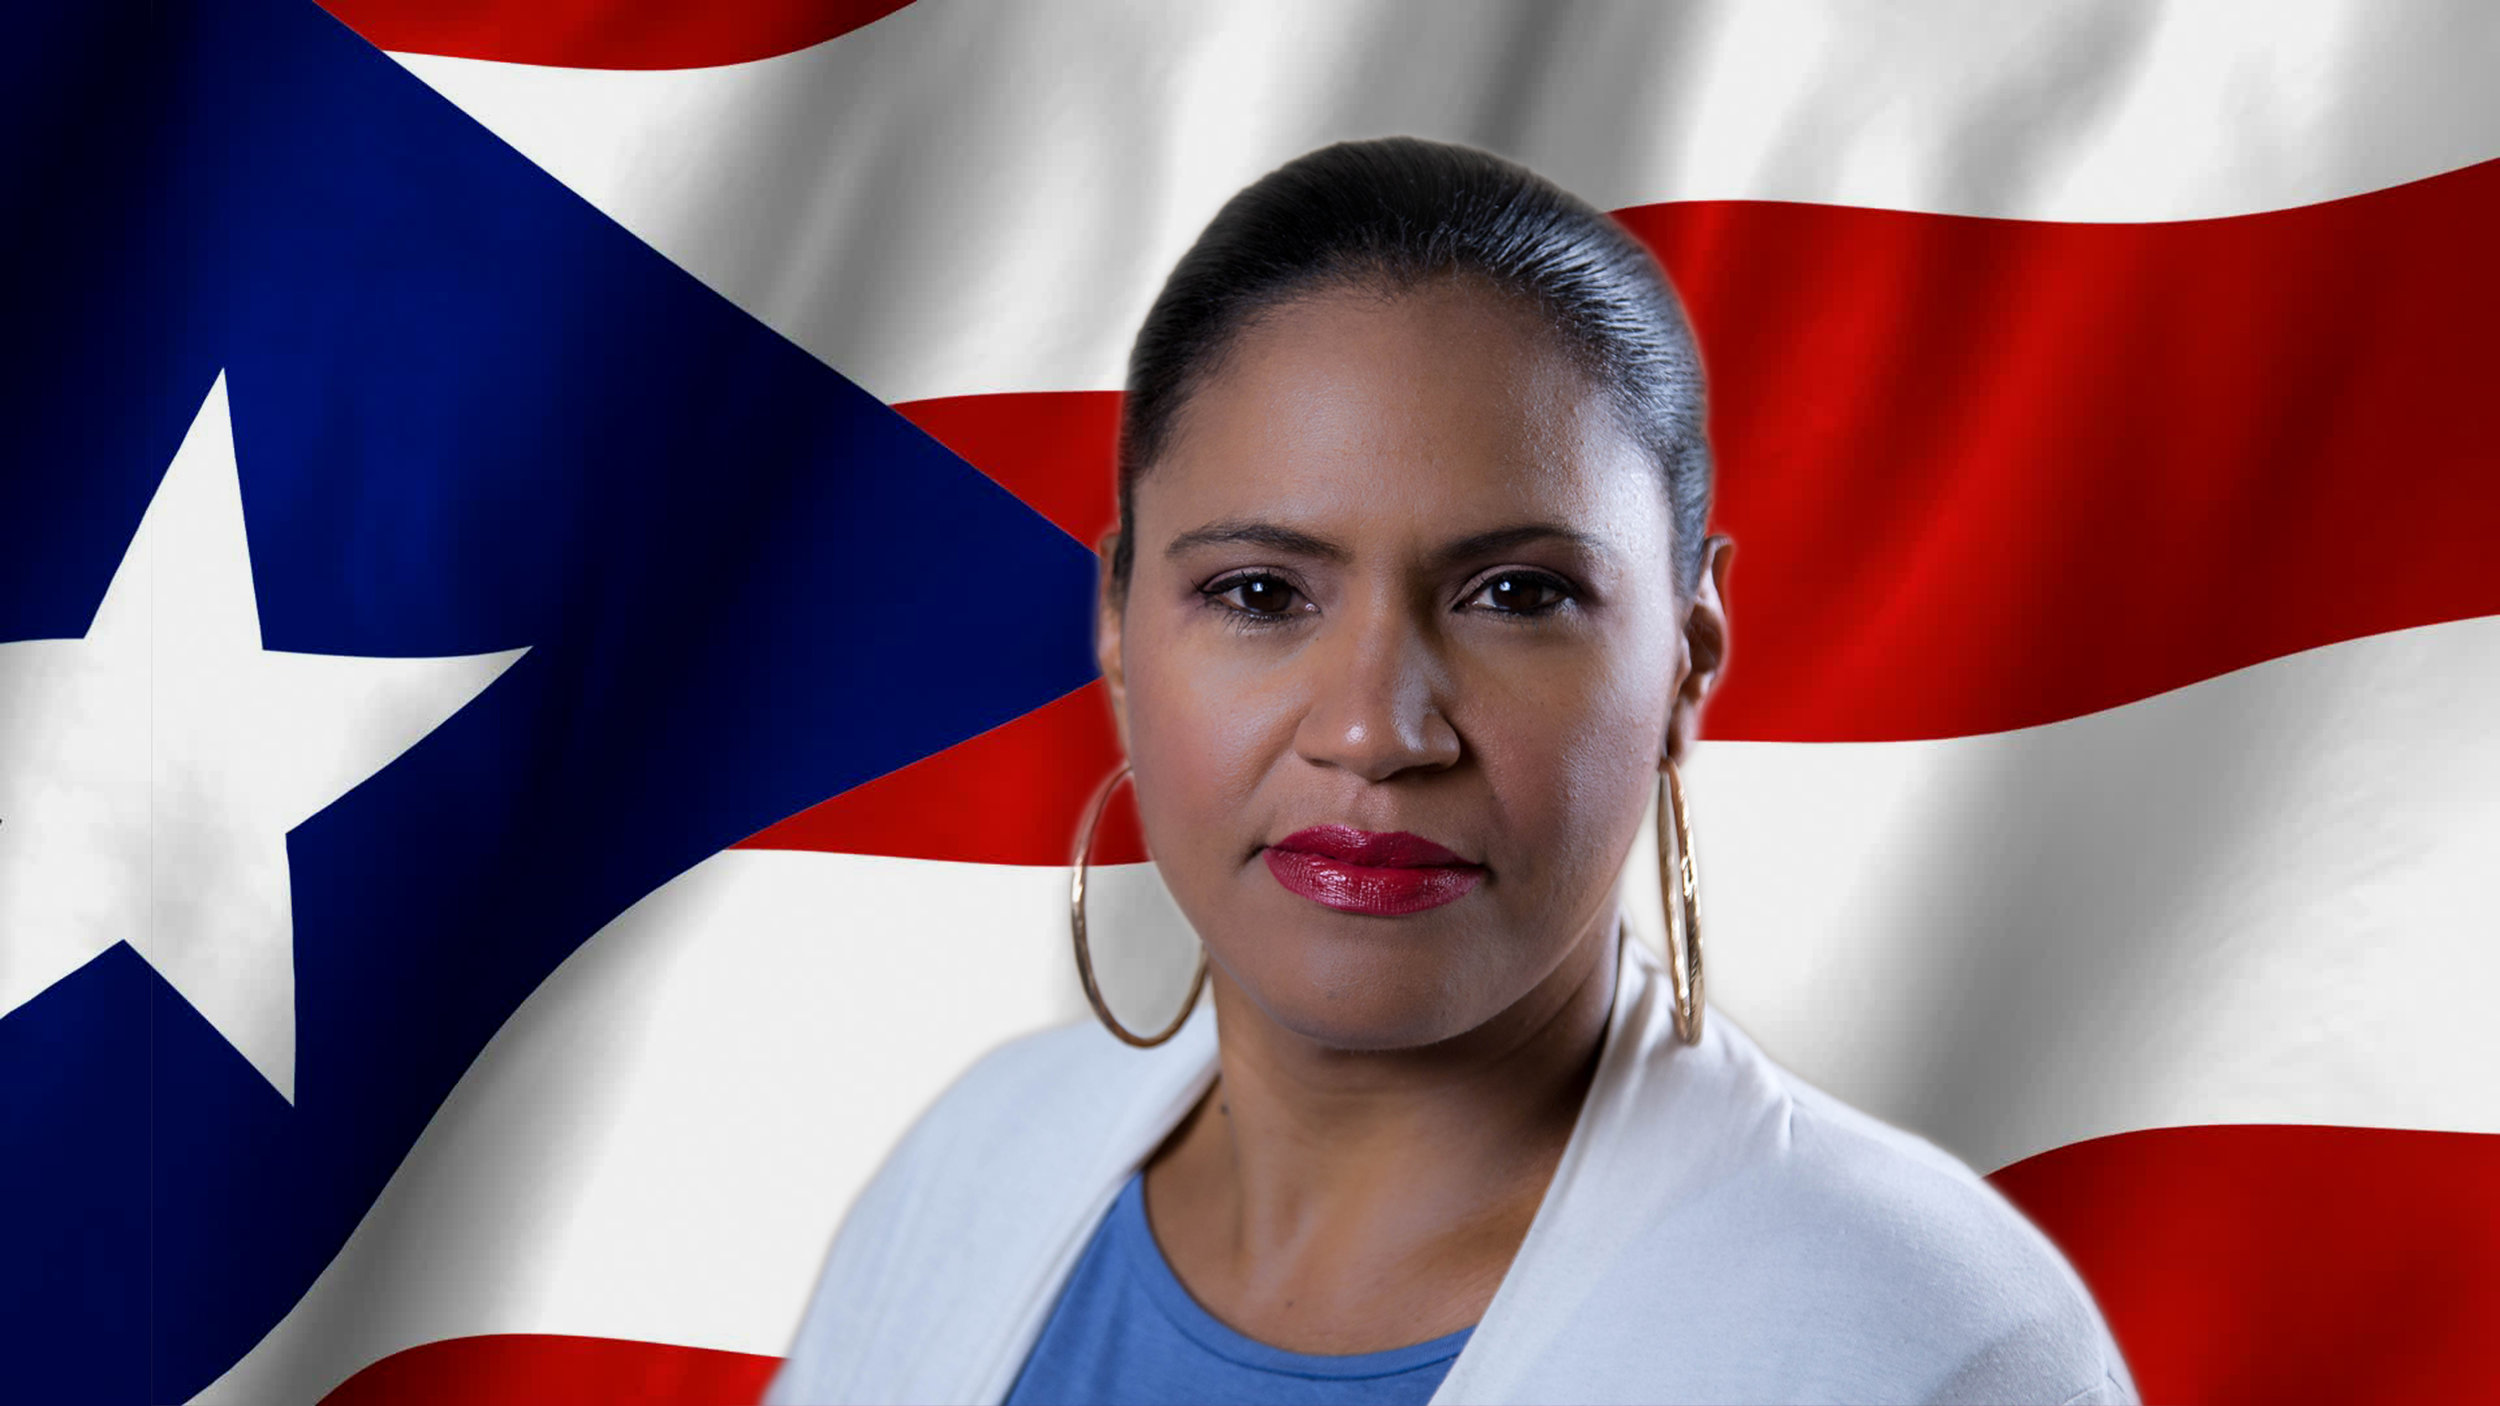 Treasurer - Germaine Matos  Born and raised in the Bronx, Germaine moved to Rochester in 1986. Her knowledge of her Puerto Rican heritage comes from her grandmother Maria Perez and her grandfather Ramon Perez who were from Ponce and Juana Diaz, Puerto Rico.  Germaine is currently employed with the Rochester City School District. She has served her community with the district for 7 years. She graduated from East High School in Rochester NY and has a degree in Business Administration. She is also an alumni of the Latino Leadership Development Program (LLDP). Germaine enjoys raising her eight year old granddaughter and takes pride in teaching her to be a proud and educated Latina.